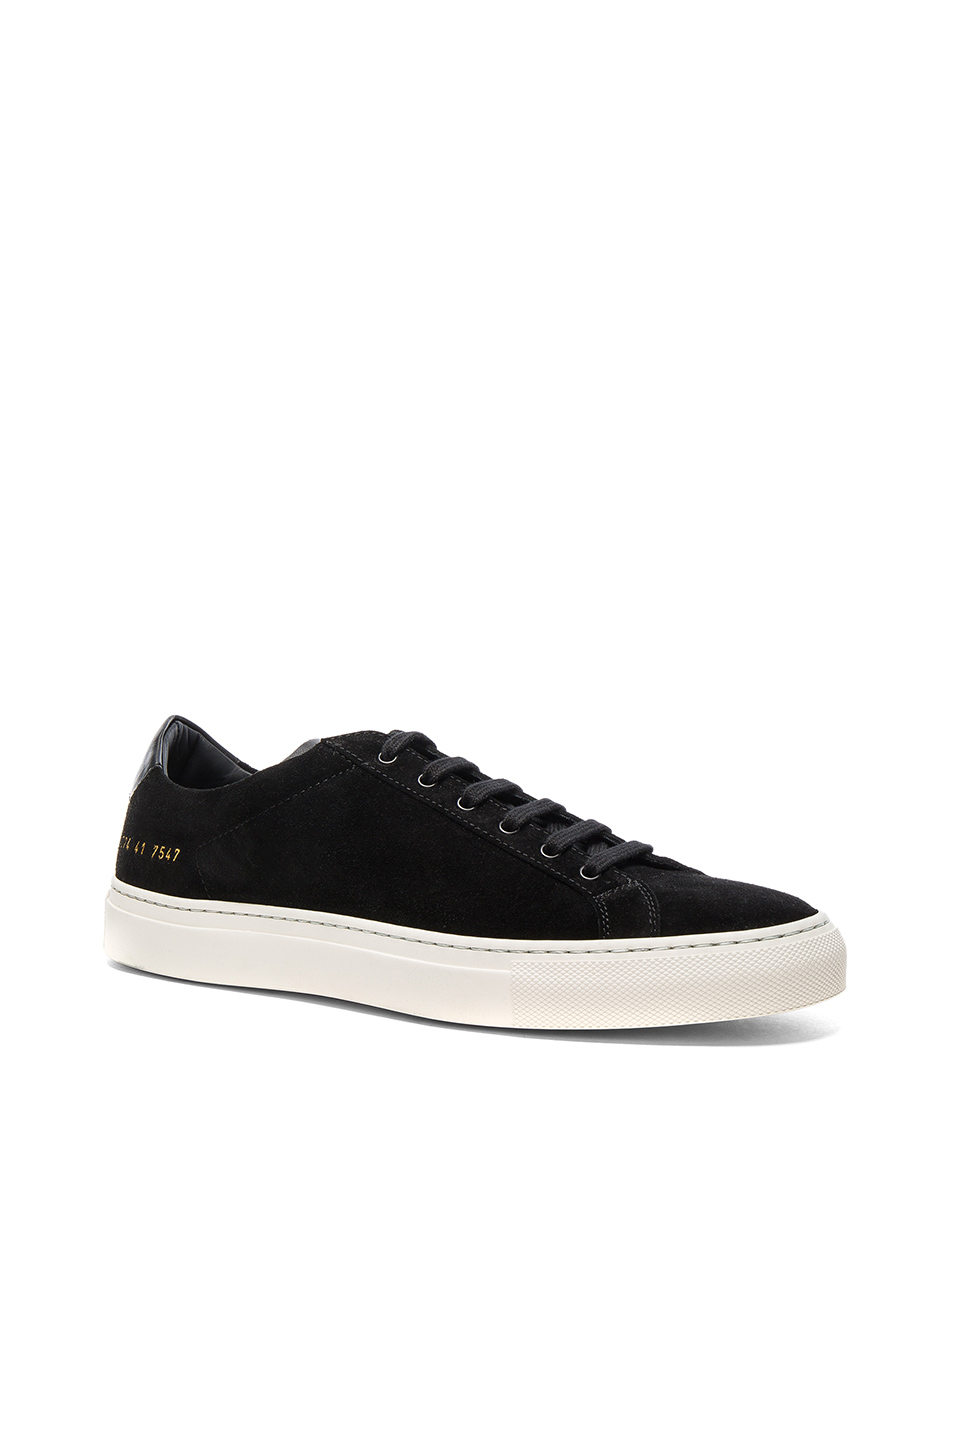 Common Projects Suede Achilles Retro Low in Black